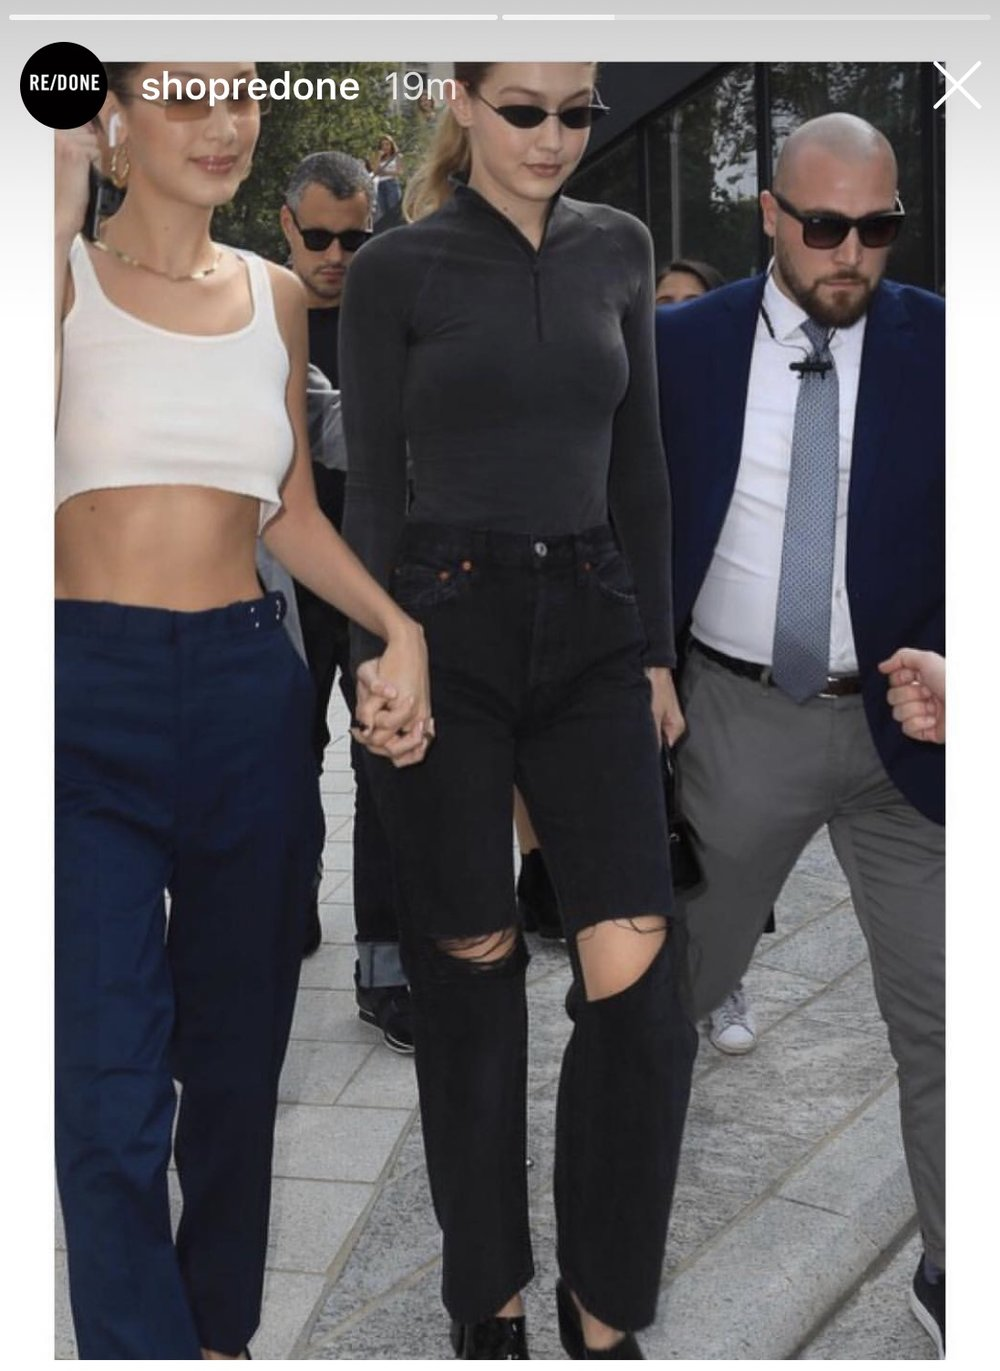 Gigi Hadid in Re/Done Original's Grunge Jean